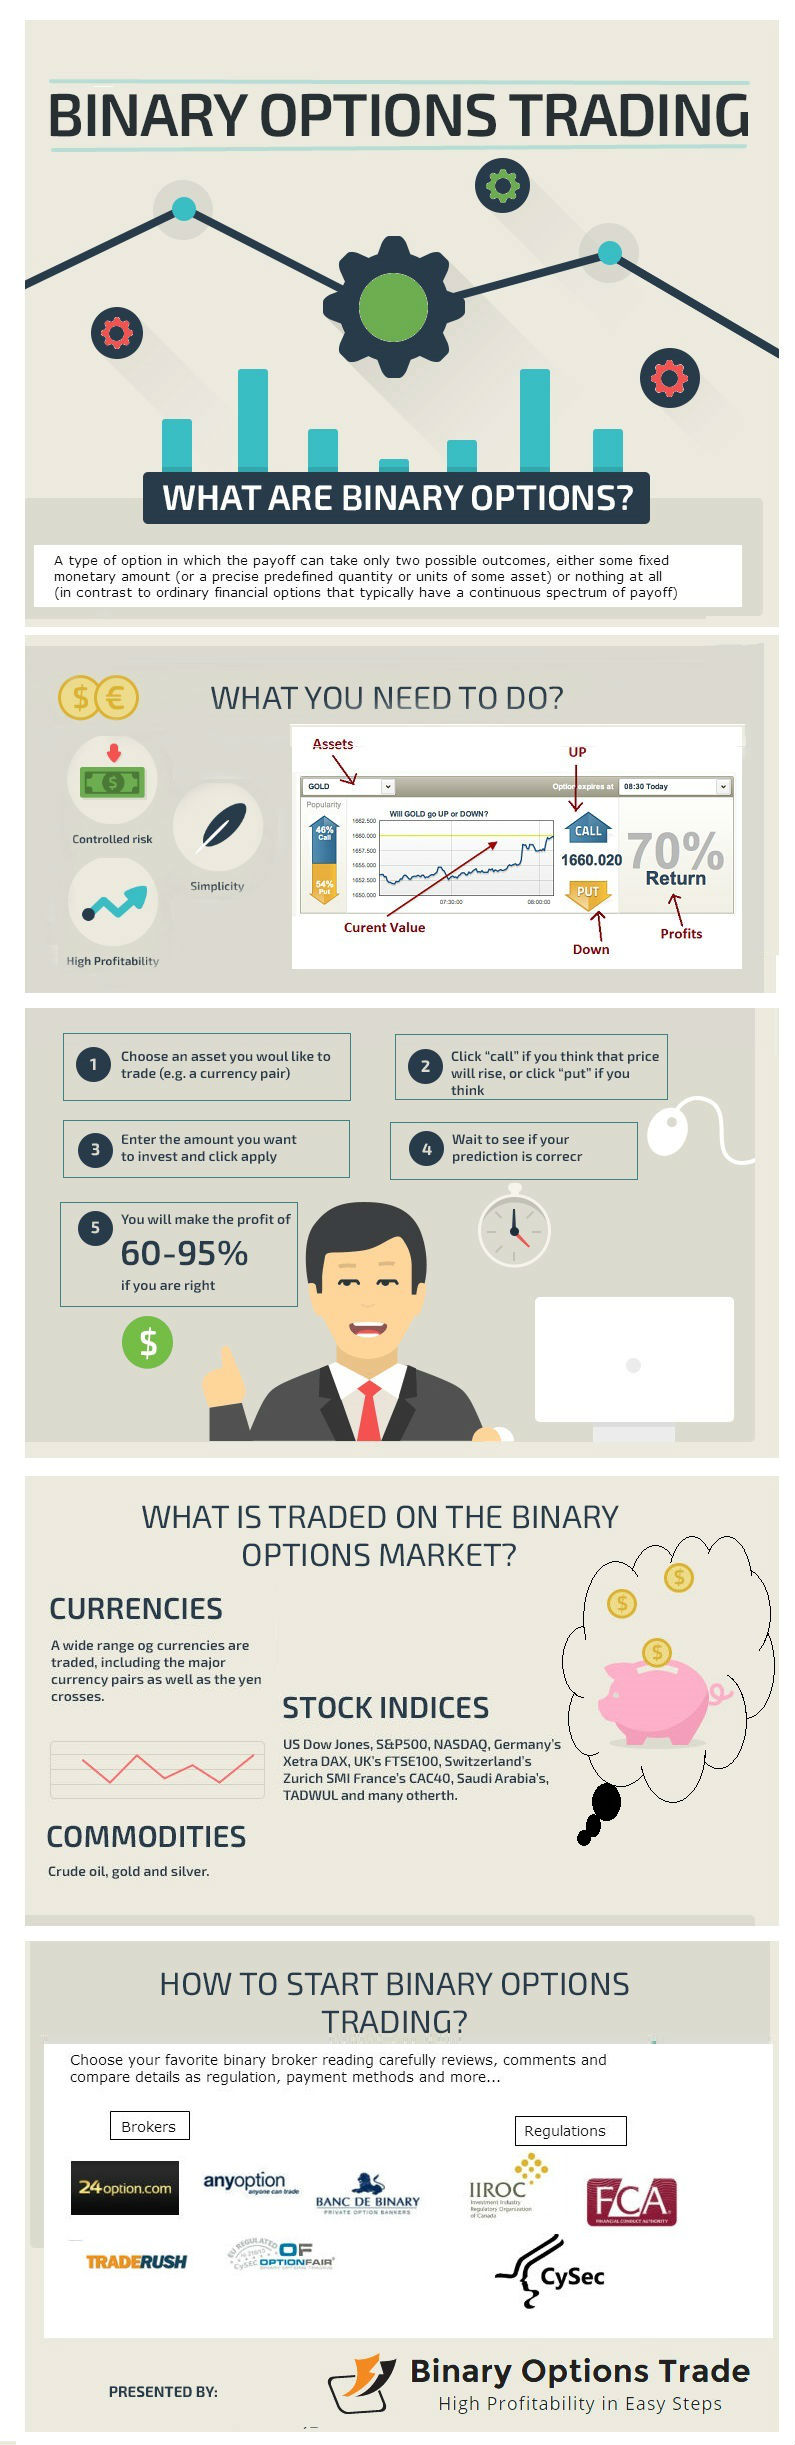 How to day trade binary options